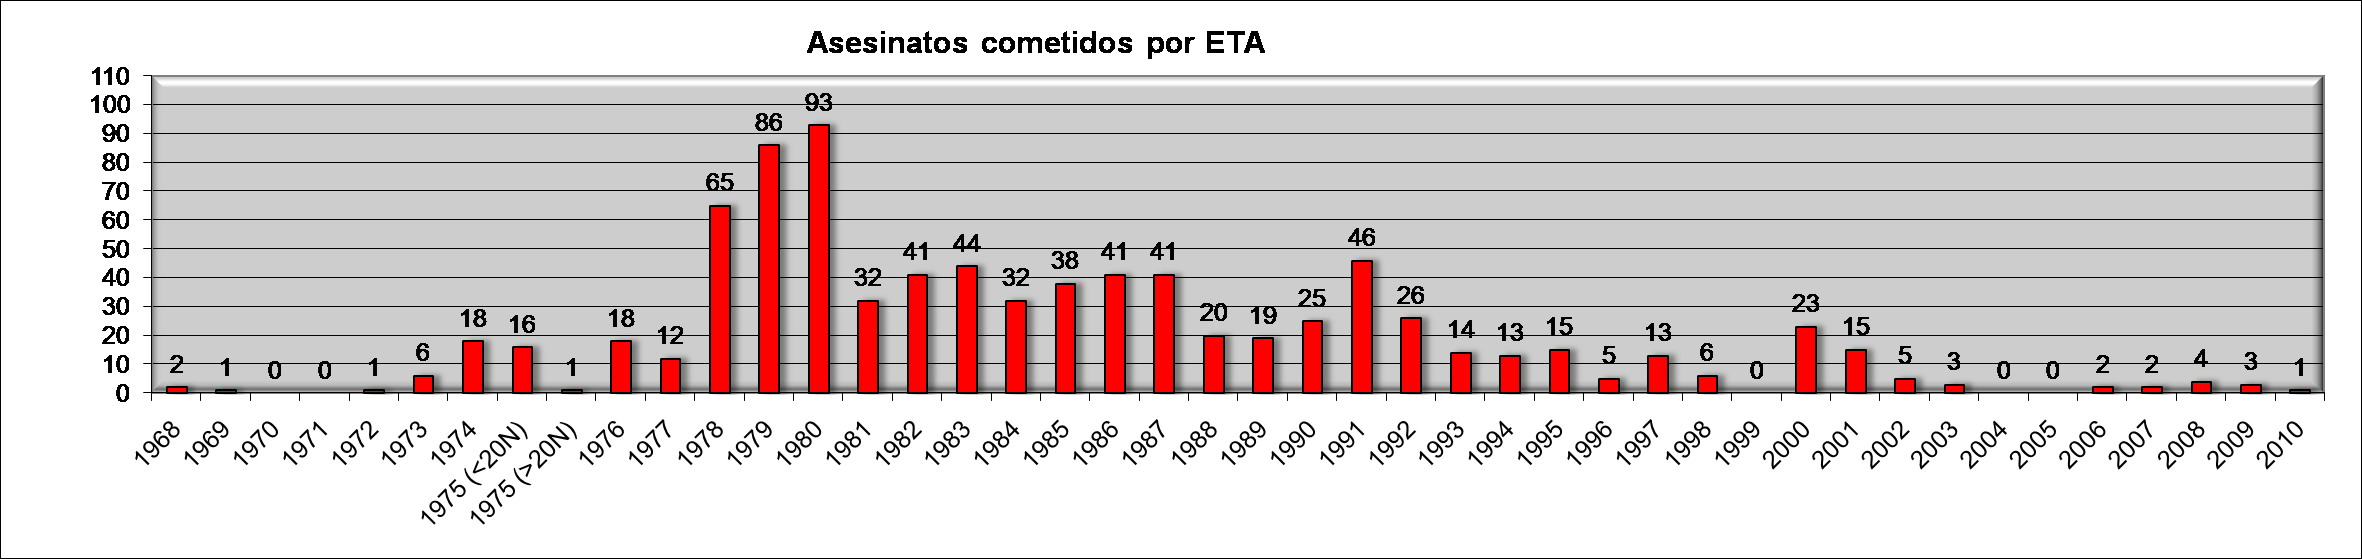 https://upload.wikimedia.org/wikipedia/commons/7/75/Evoluci%C3%B3n_asesinatos_cometidos_por_ETA.jpg